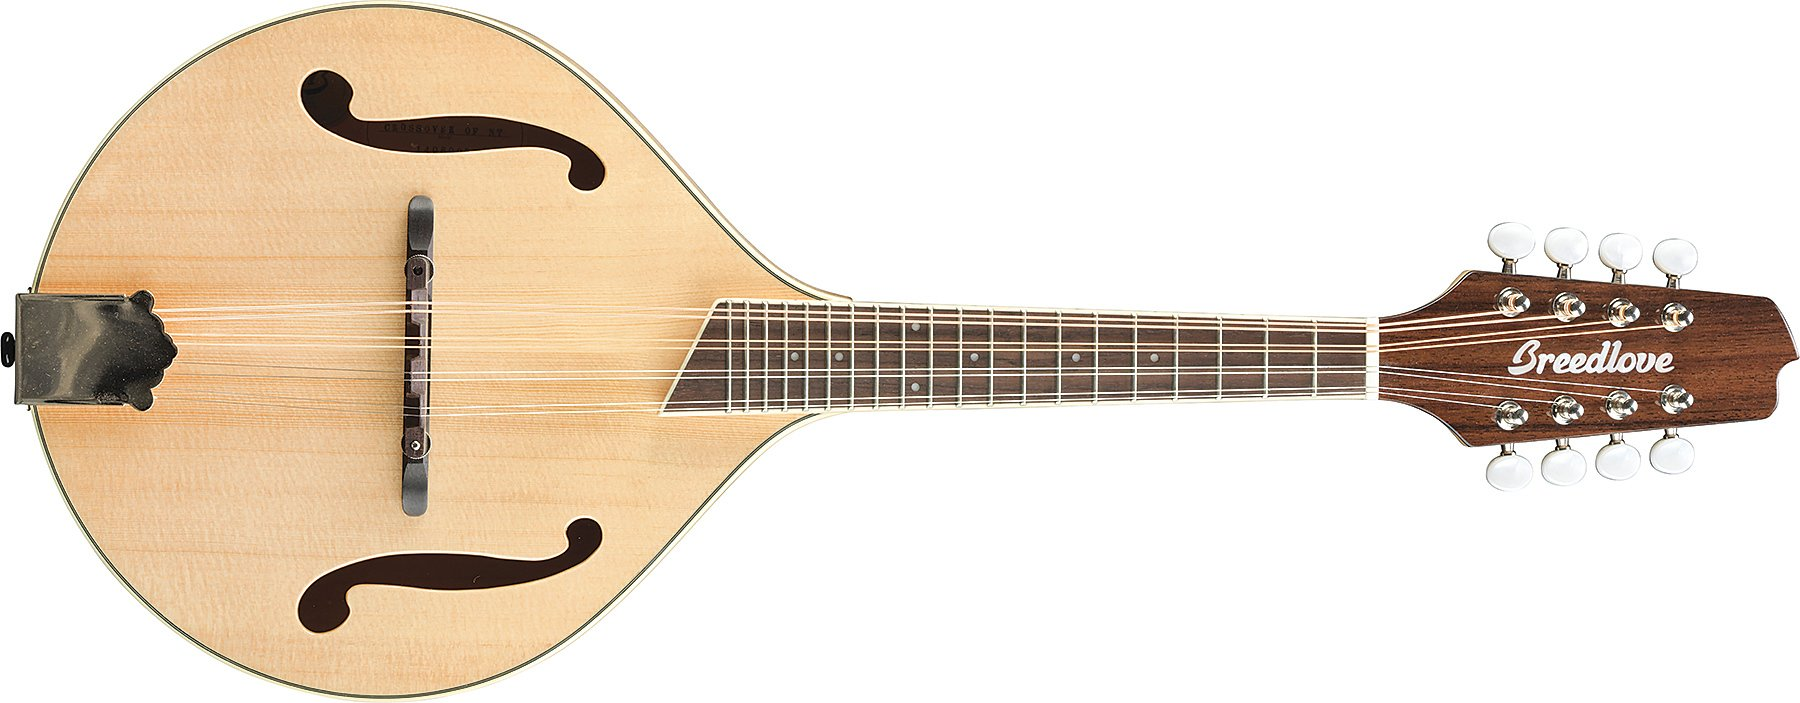 Crossover Series Mandolin OF Style